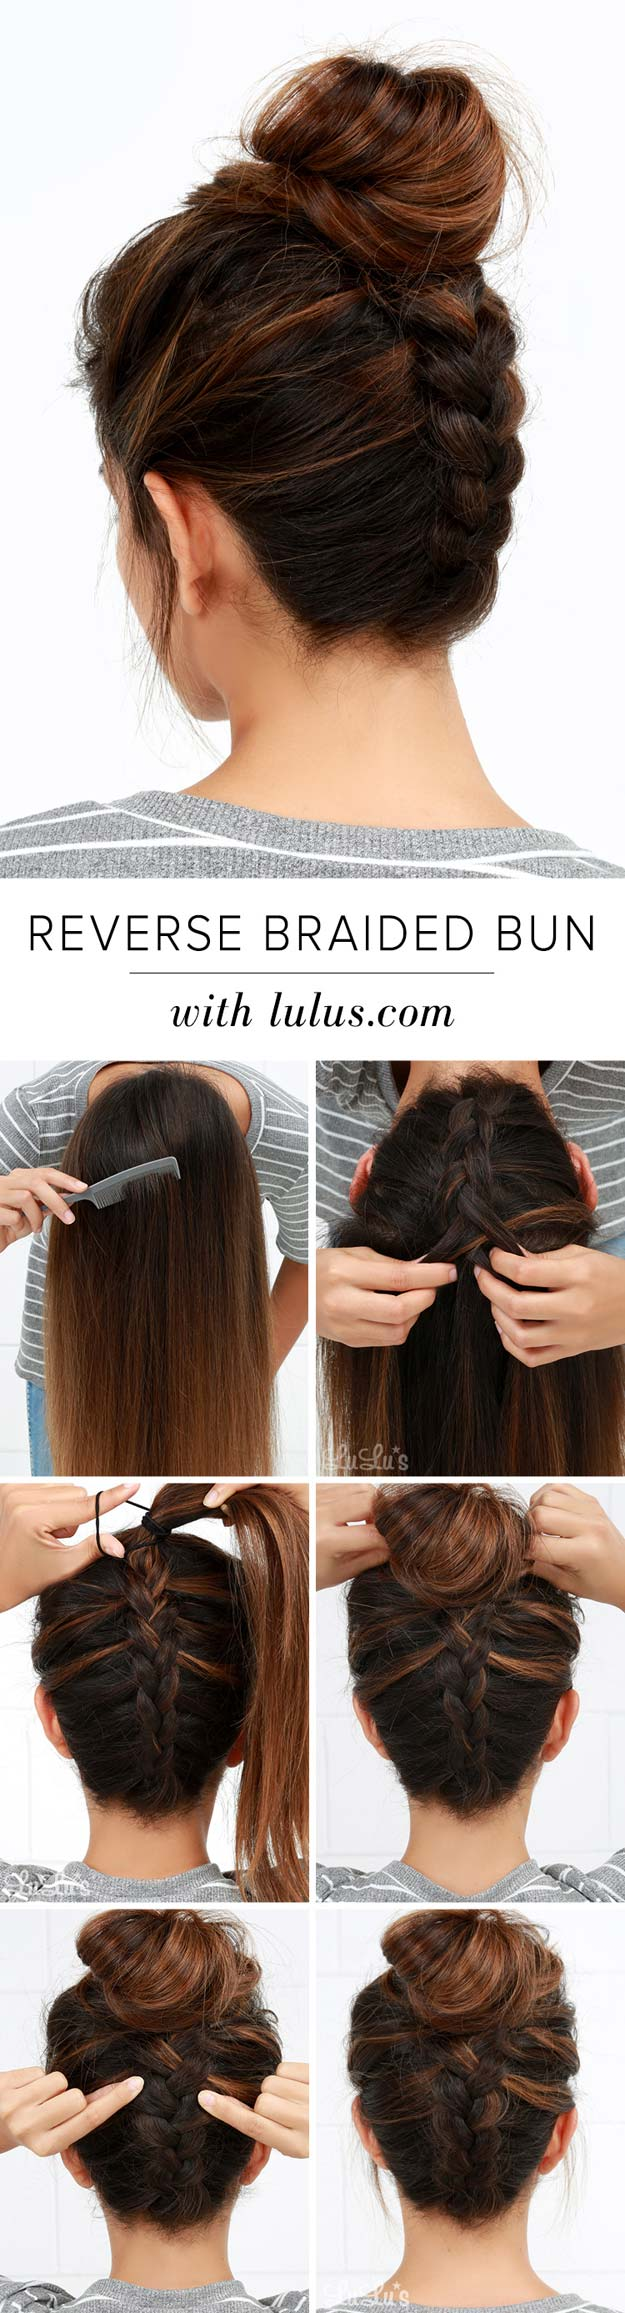 Cool and Easy DIY Hairstyles - Reversed Braided Bun - Quick and Easy Ideas for Back to School Styles for Medium, Short and Long Hair - Fun Tips and Best Step by Step Tutorials for Teens, Prom, Weddings, Special Occasions and Work. Up dos, Braids, Top Knots and Buns, Super Summer Looks #hairstyles #hair #teens #easyhairstyles #diy #beauty